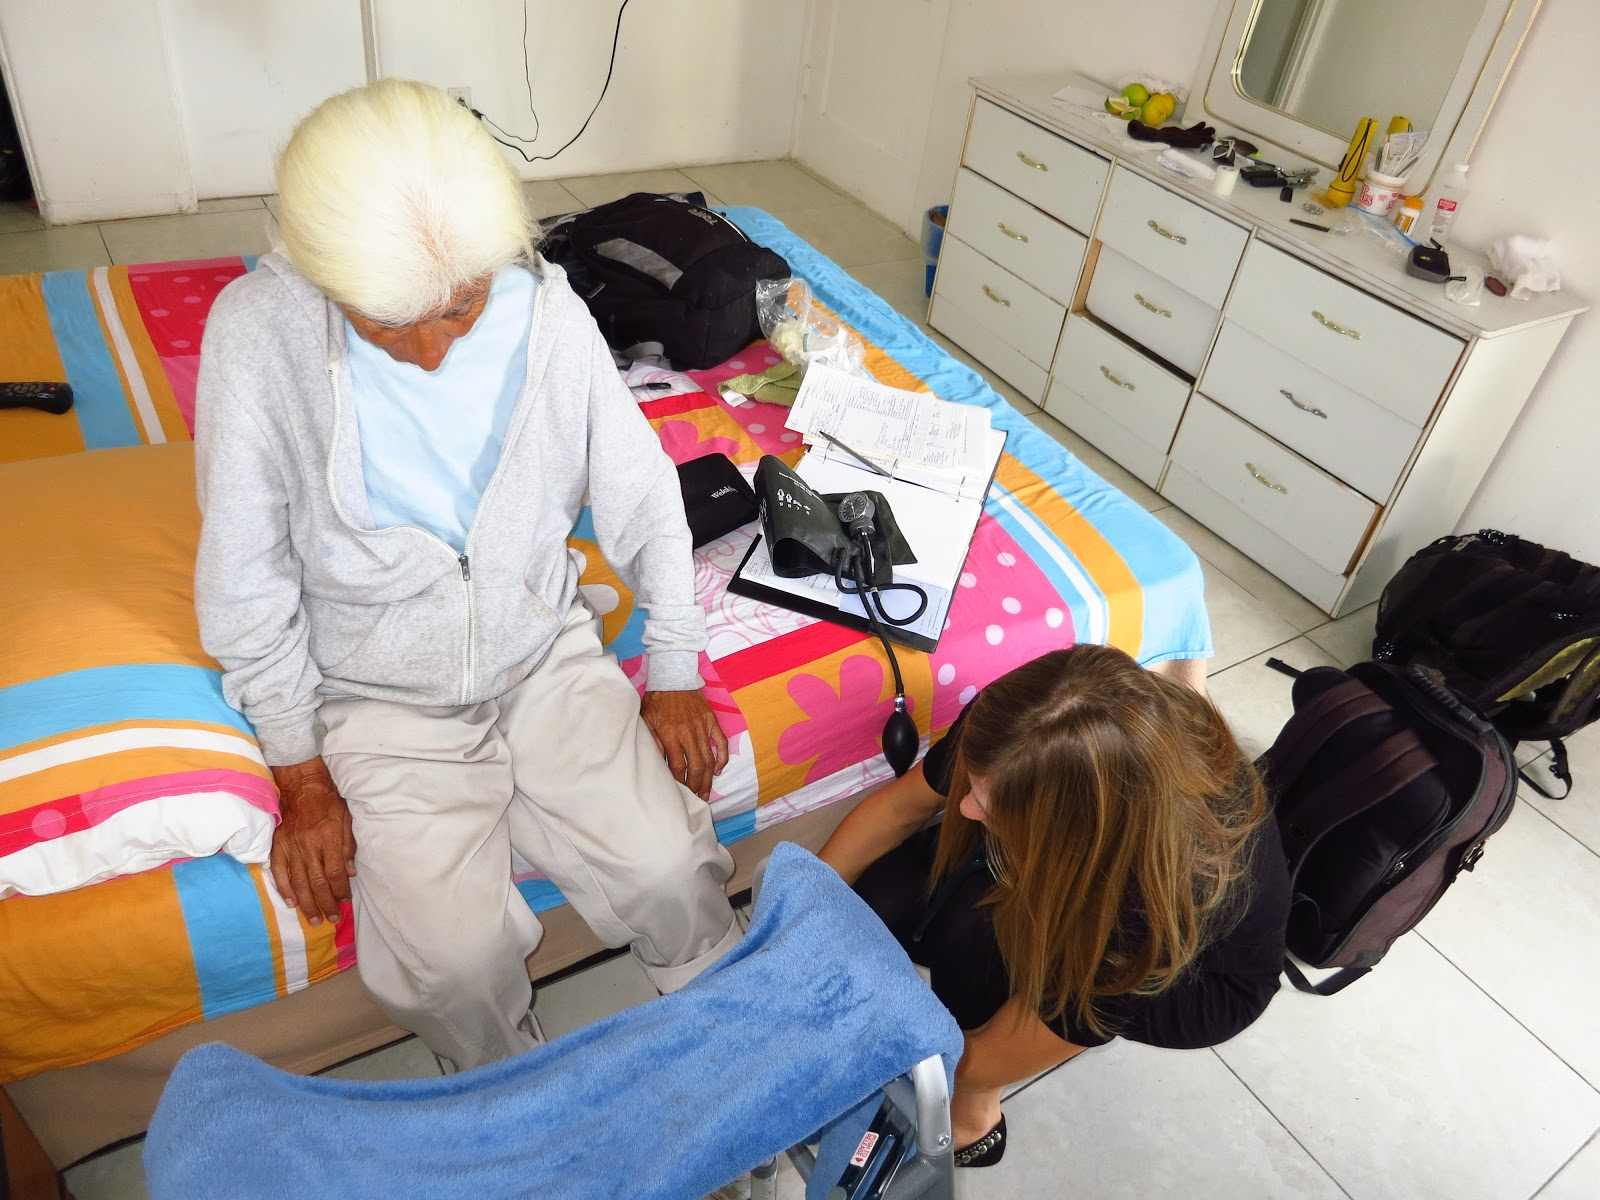 Figure 6.  Physician Assistant, Carrie Kowalski, tends to a patient with mobility issues in a local motel.  Taken by Rose Garcia of The People Concern.